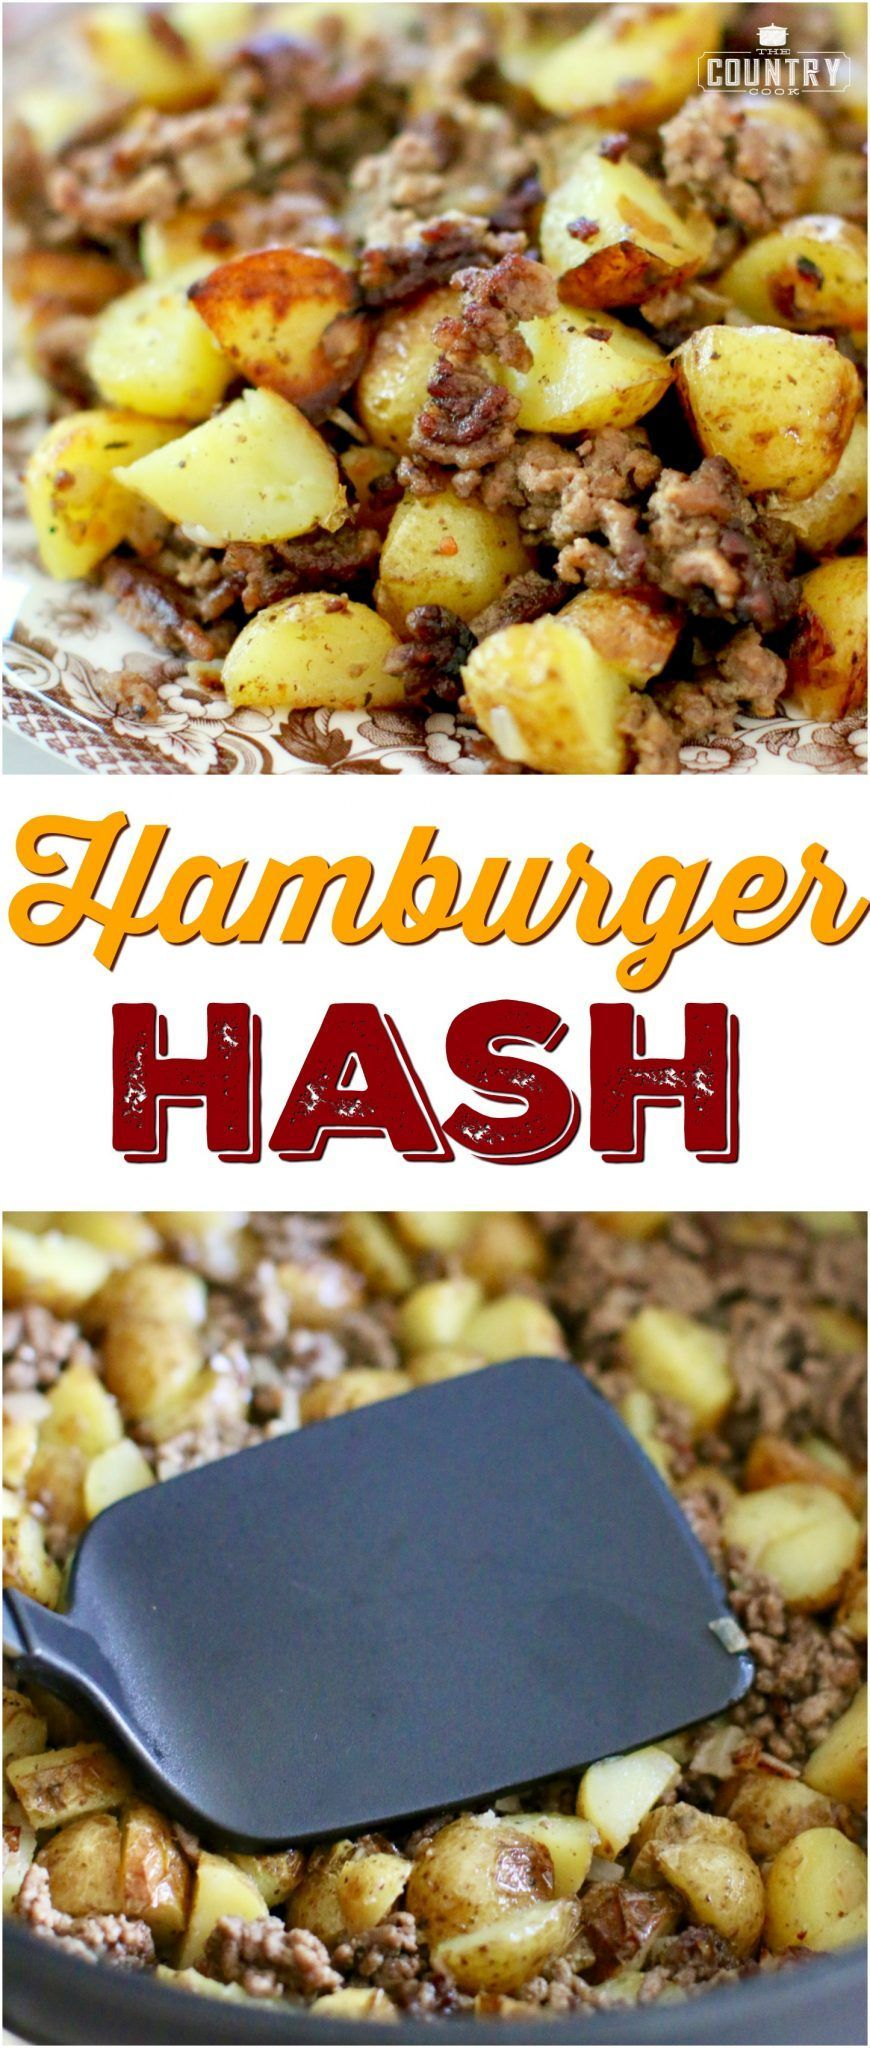 Hamburger Hash images